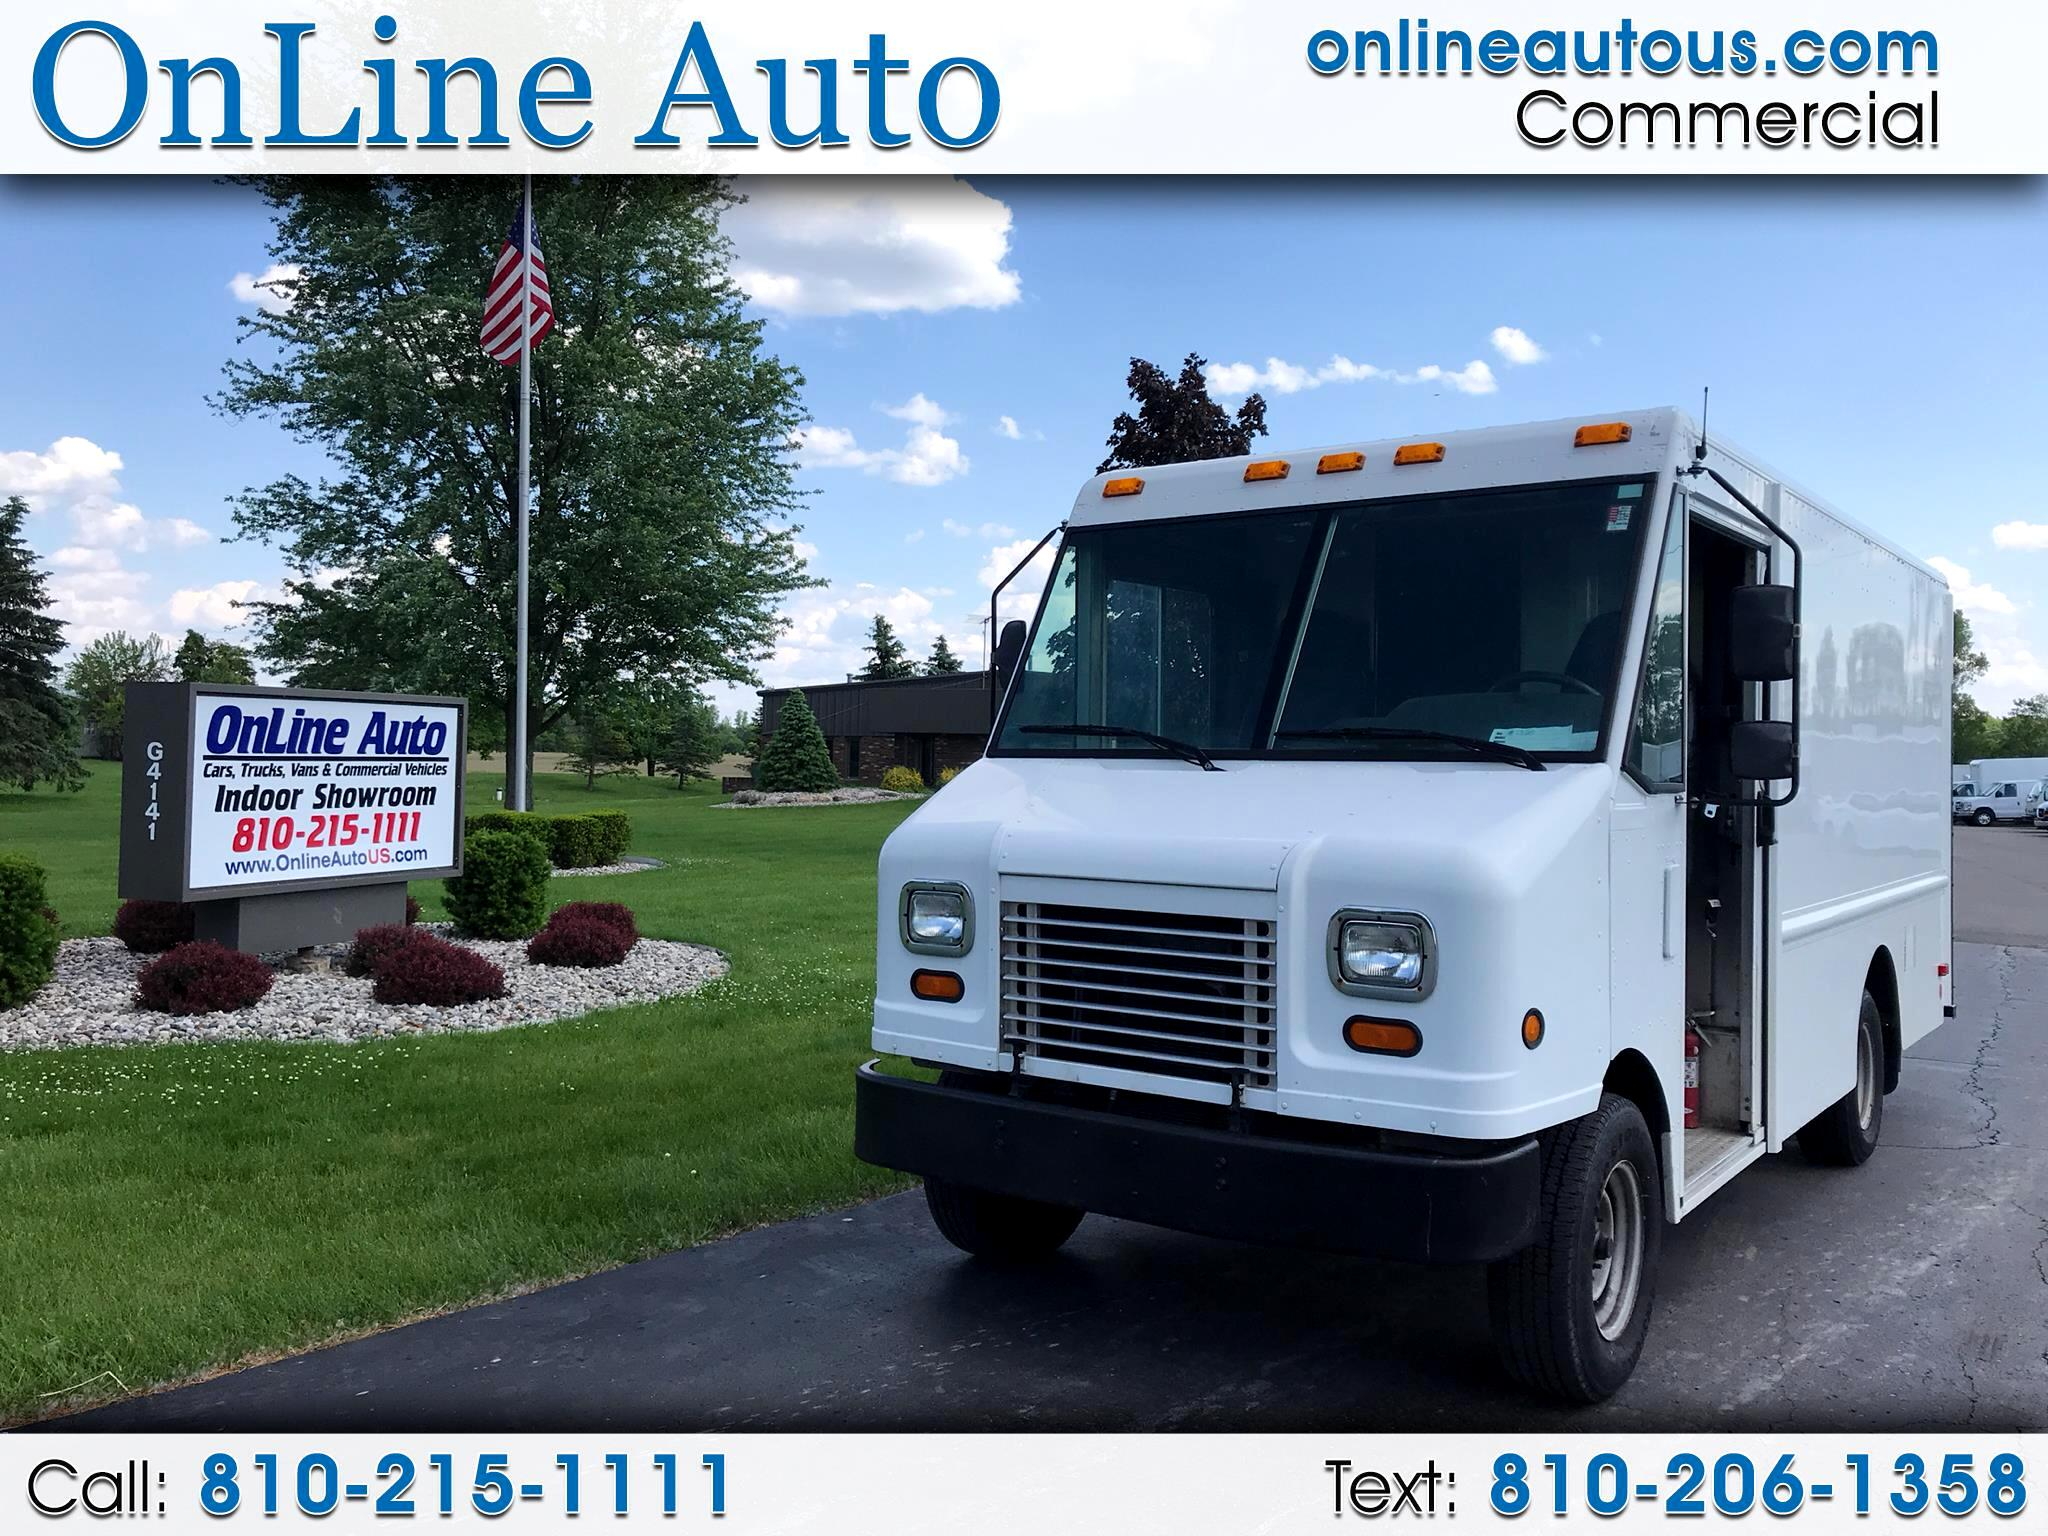 2010 Ford E-Series 12' STEP VAN W/BULKHEAD